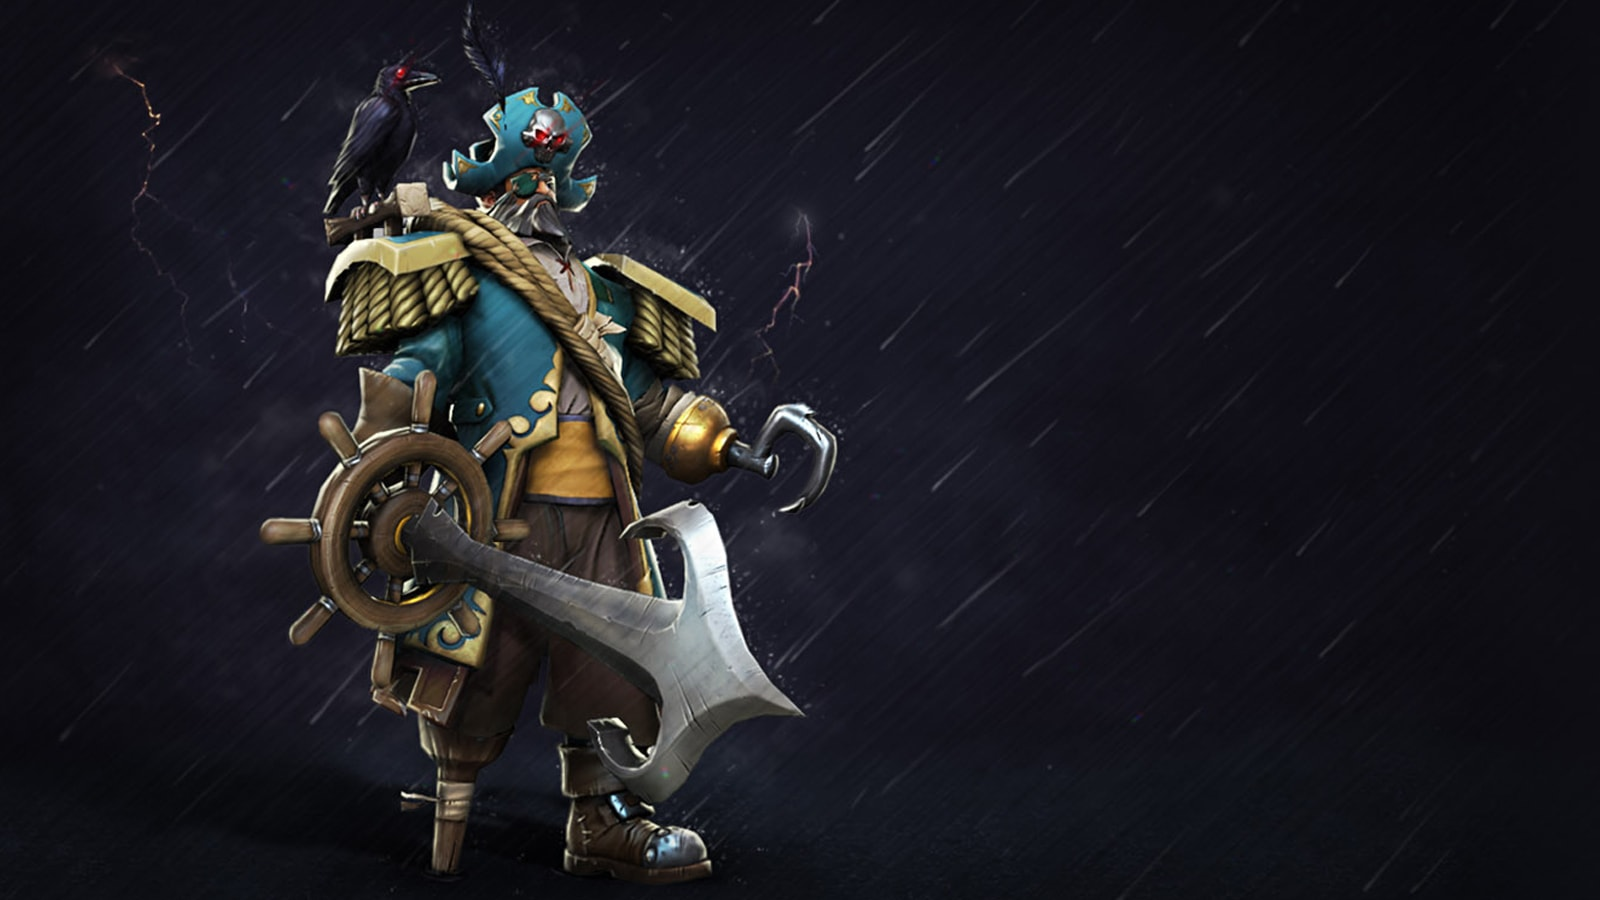 Dota2 : Kunkka full hd wallpapers